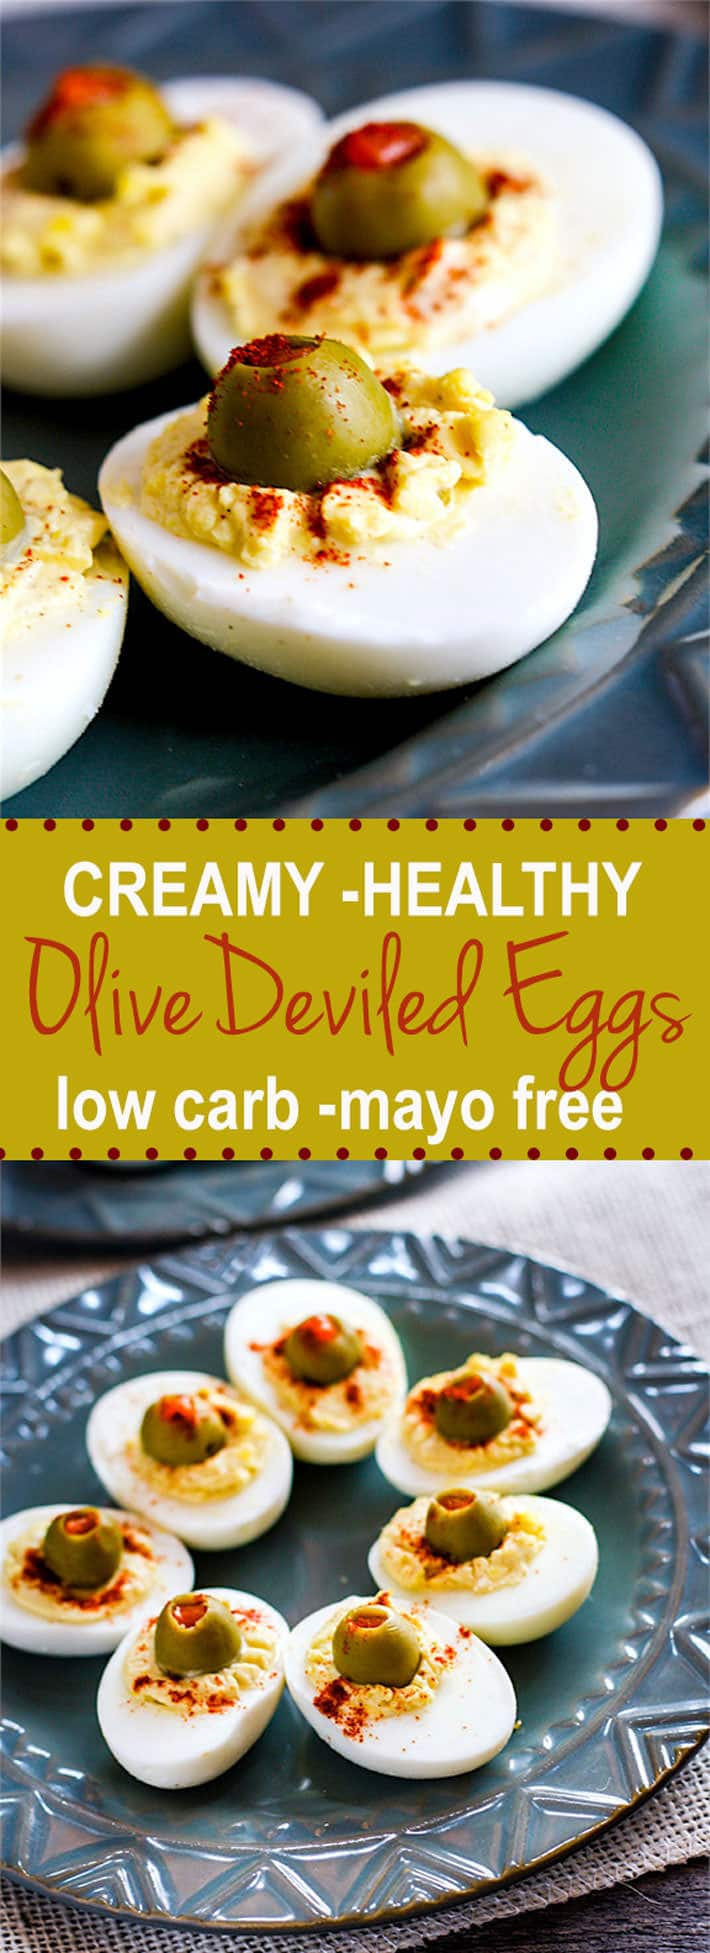 creamy greek yogurt deviled eggs with olives. Super healthy, mayo free, low carb, and delicious! Great for snacks, appetizers, brunch, and more! Rich in Vitamin D, Calcium, and healthy fats! YUM! www.cottercrunch.com